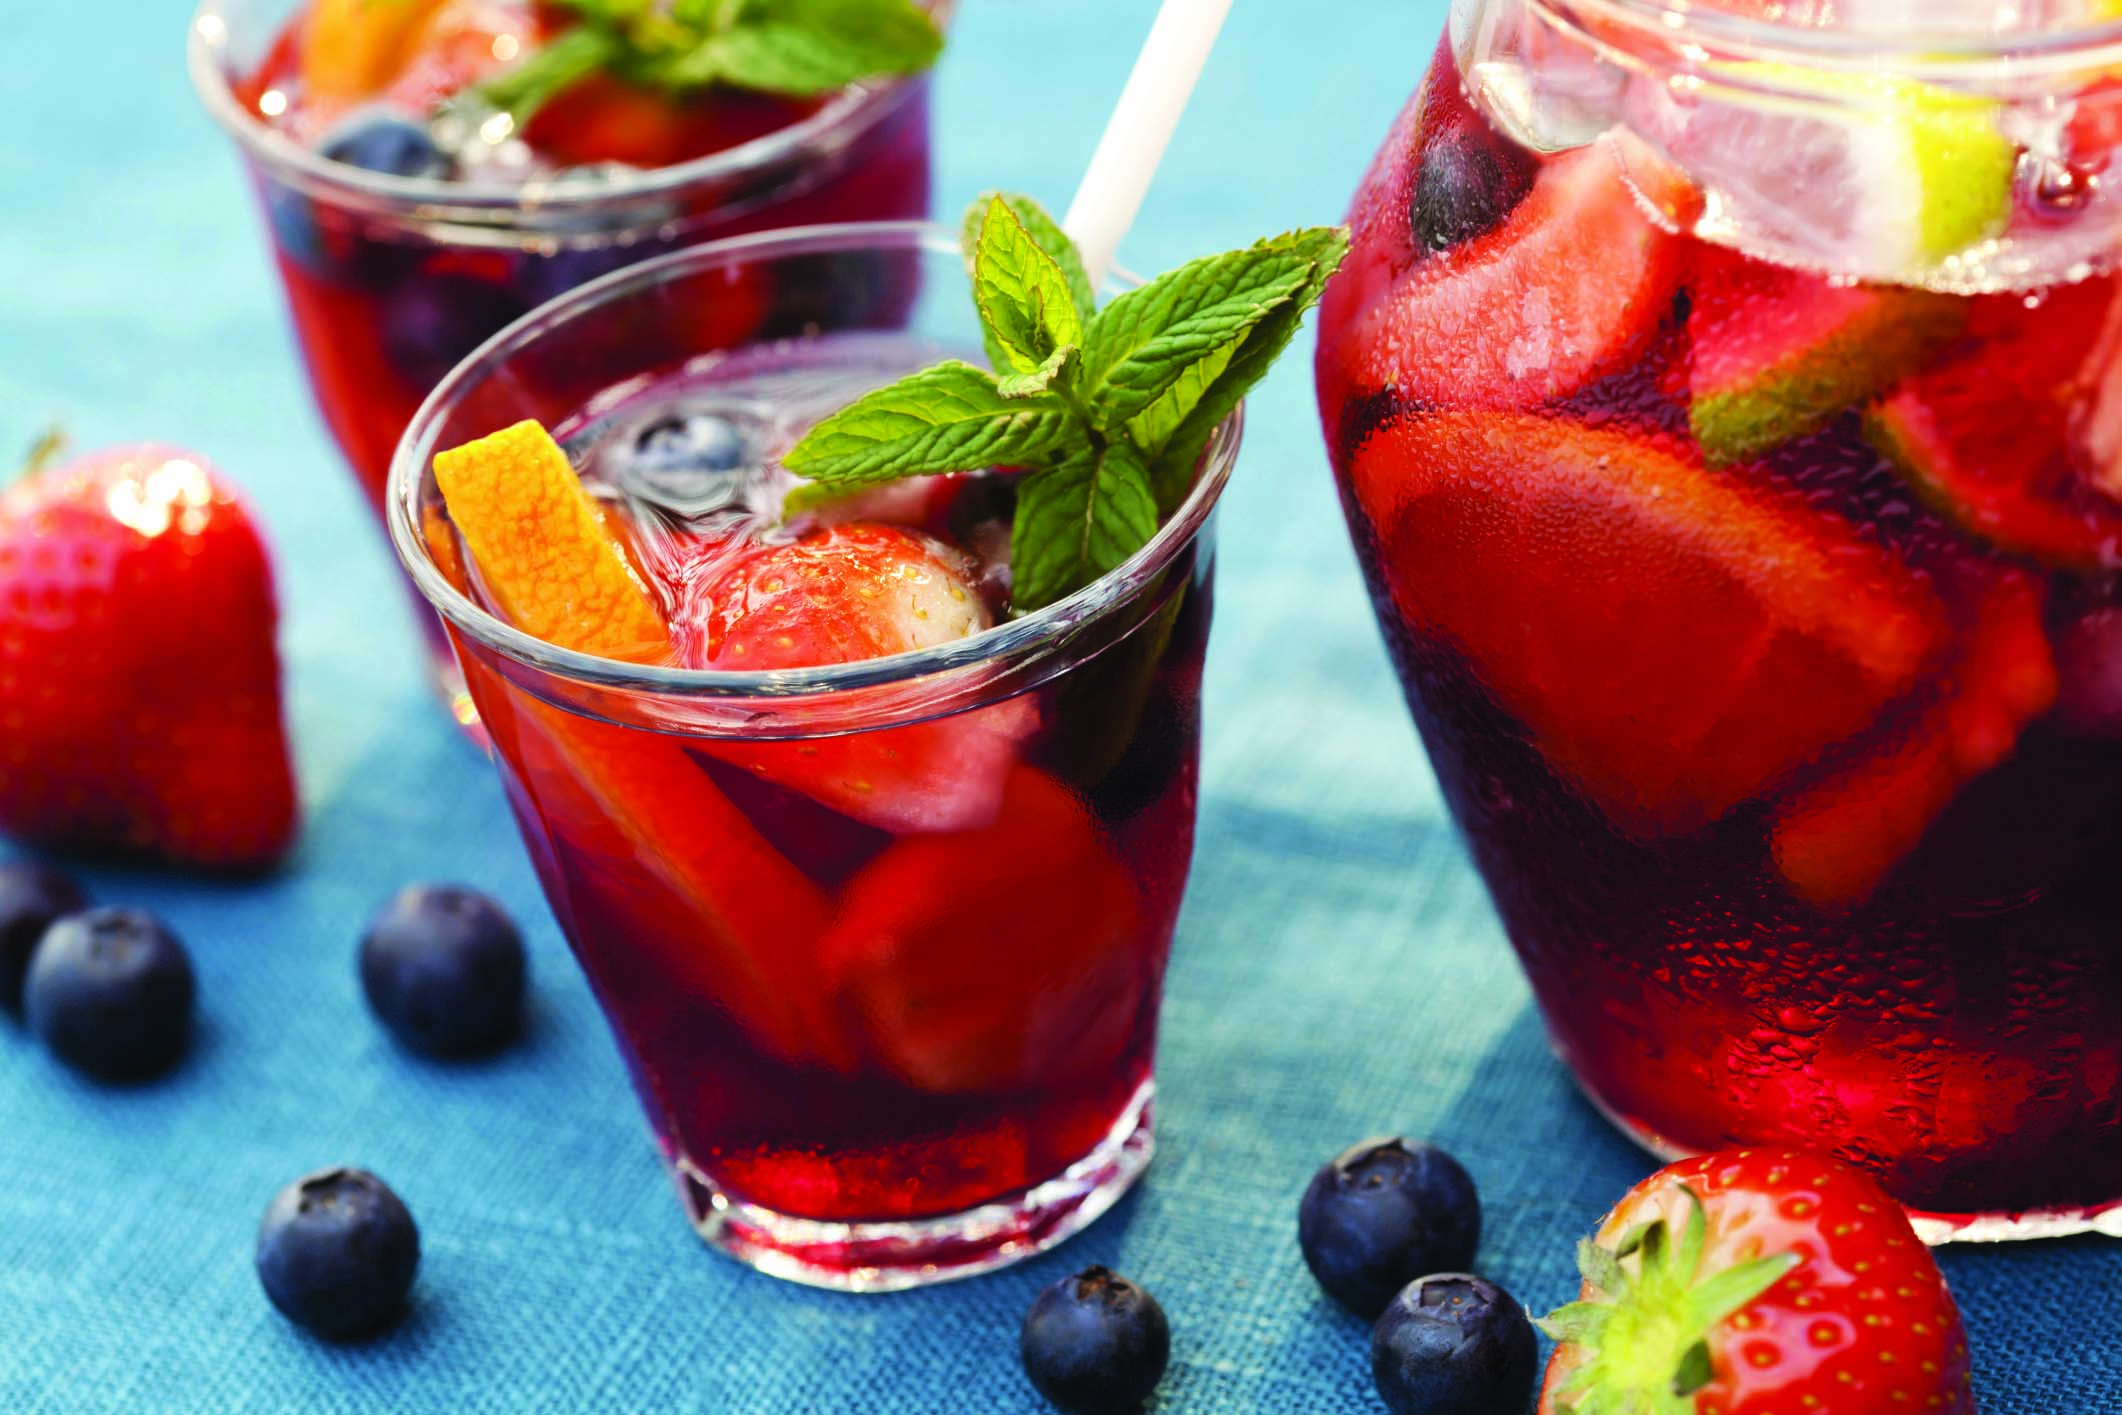 How To Make A Red Wine Sangria [VIDEO] - Central Florida ...